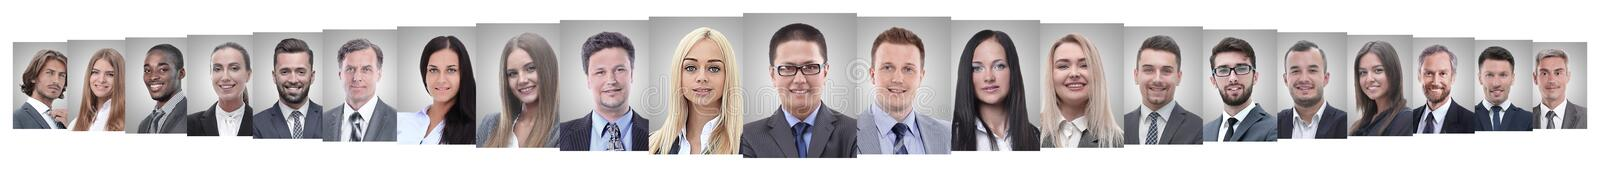 Leader and professional business team standing together. Isolated on white background royalty free stock photography